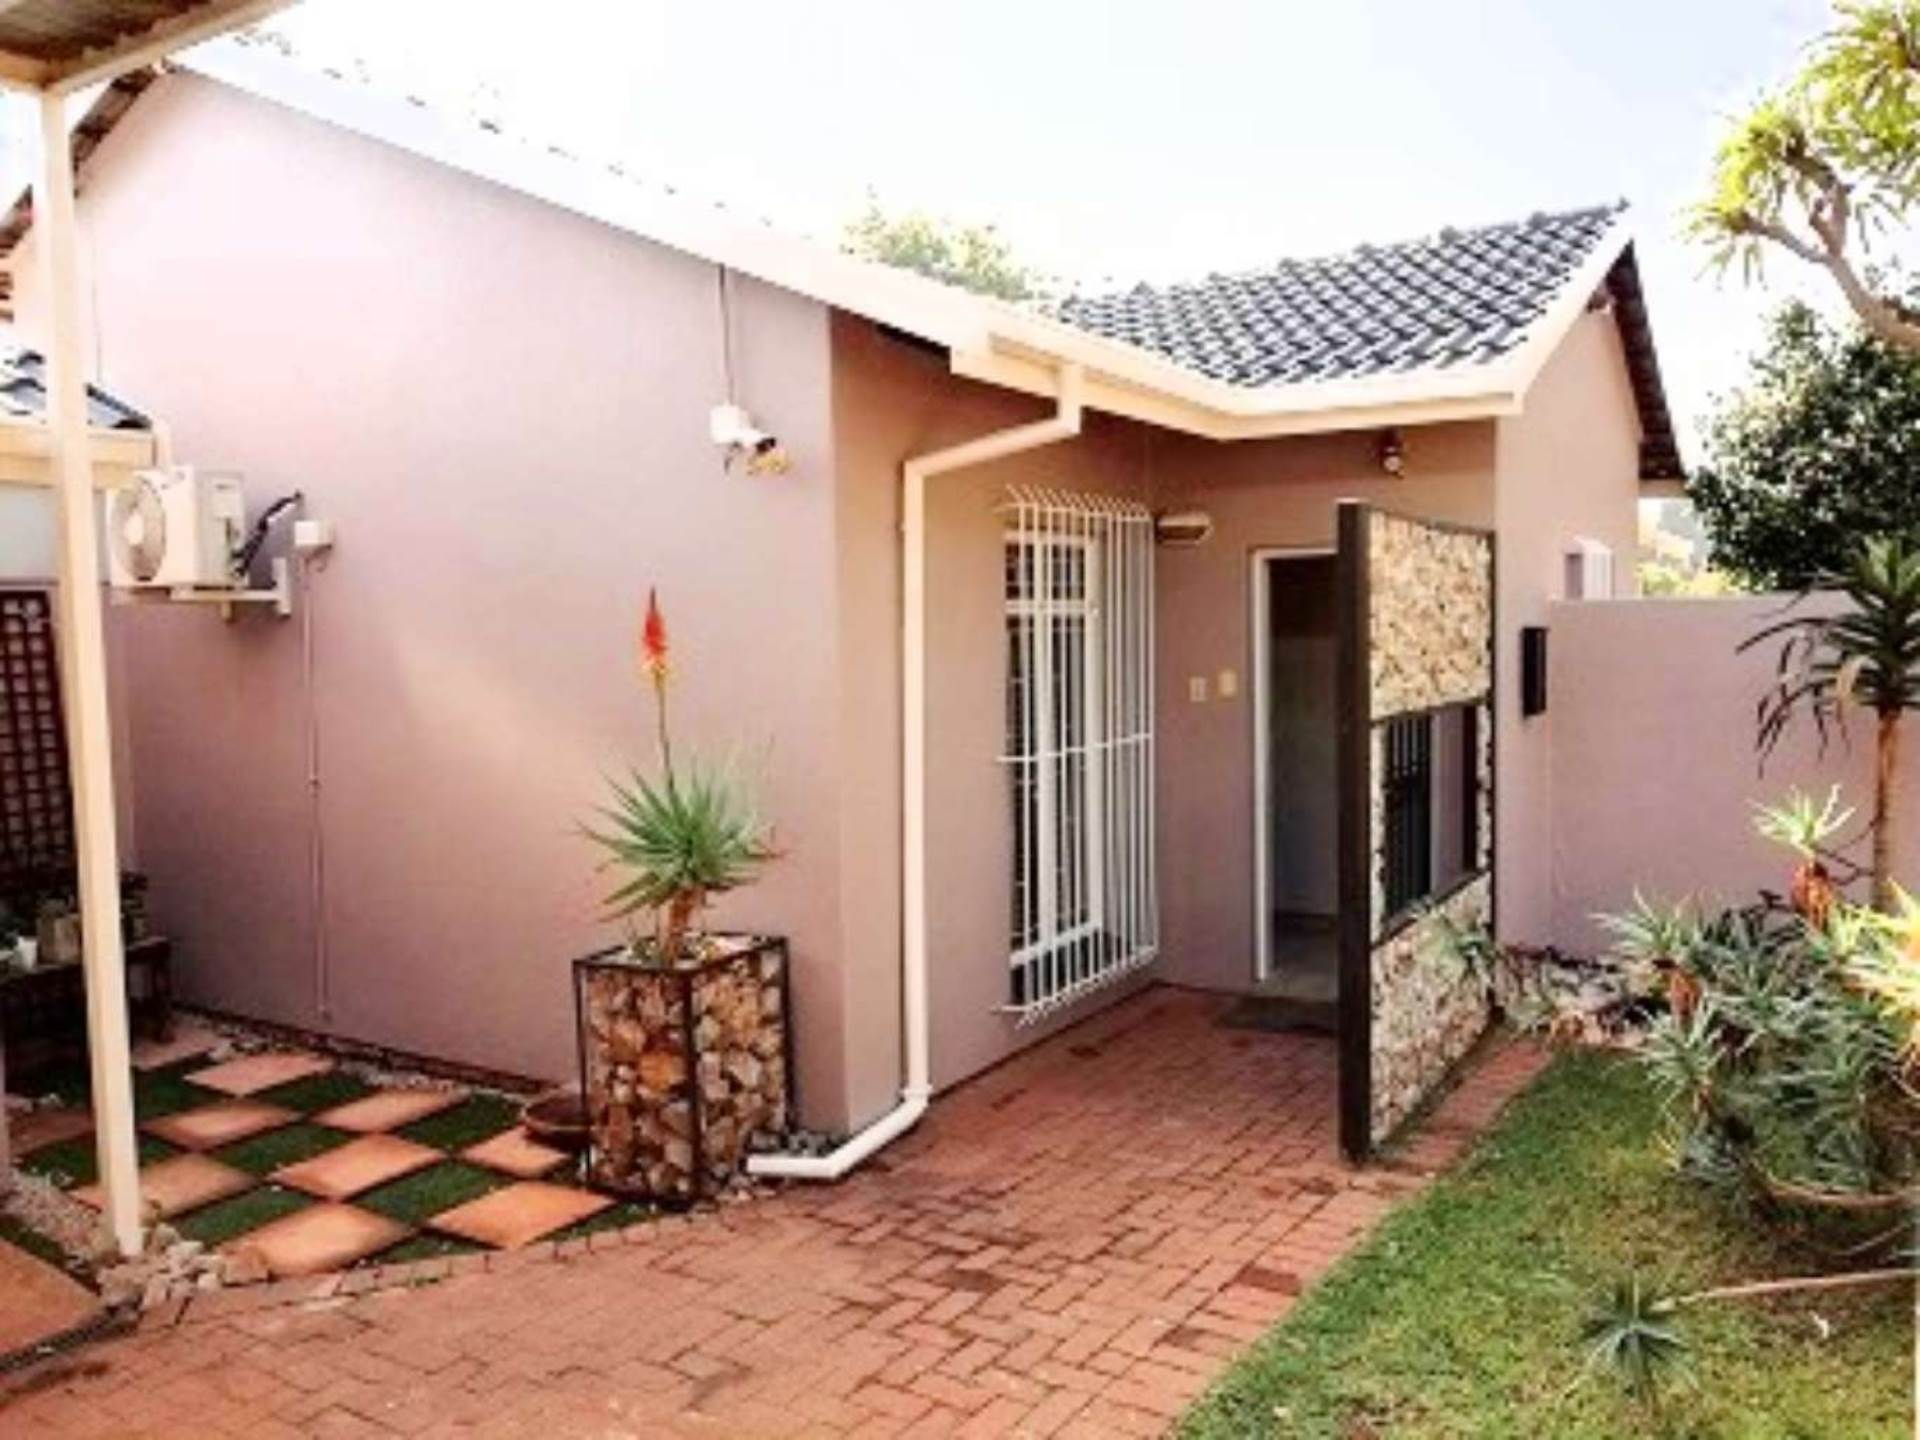 Pretoria, Garsfontein Property  | Houses For Sale Garsfontein, GARSFONTEIN, House 3 bedrooms property for sale Price:2,300,000